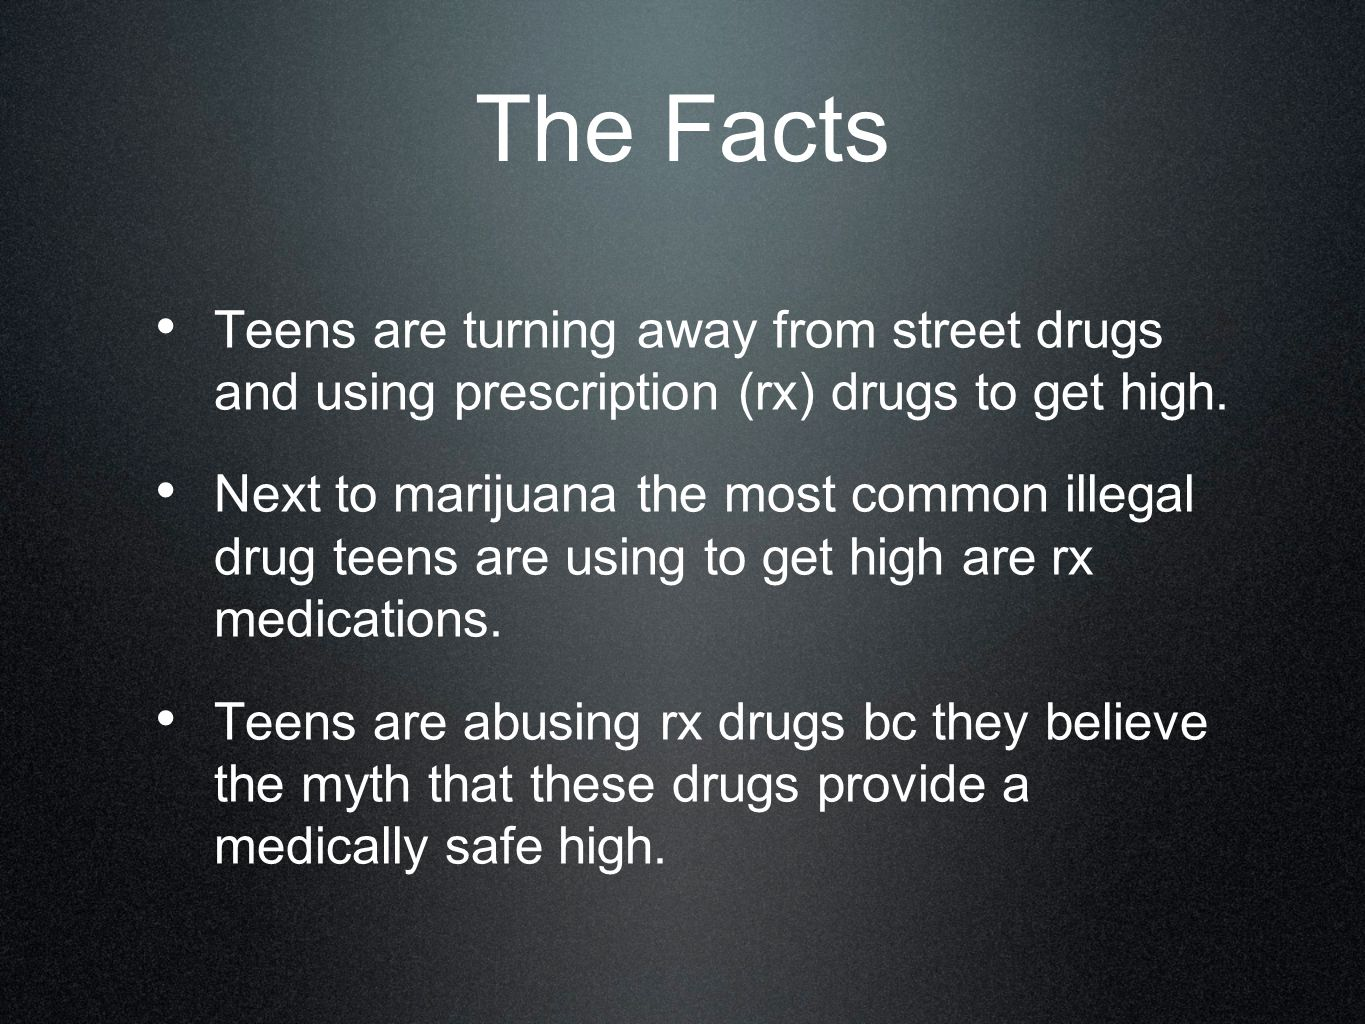 The Facts Teens are turning away from street drugs and using prescription (rx) drugs to get high.